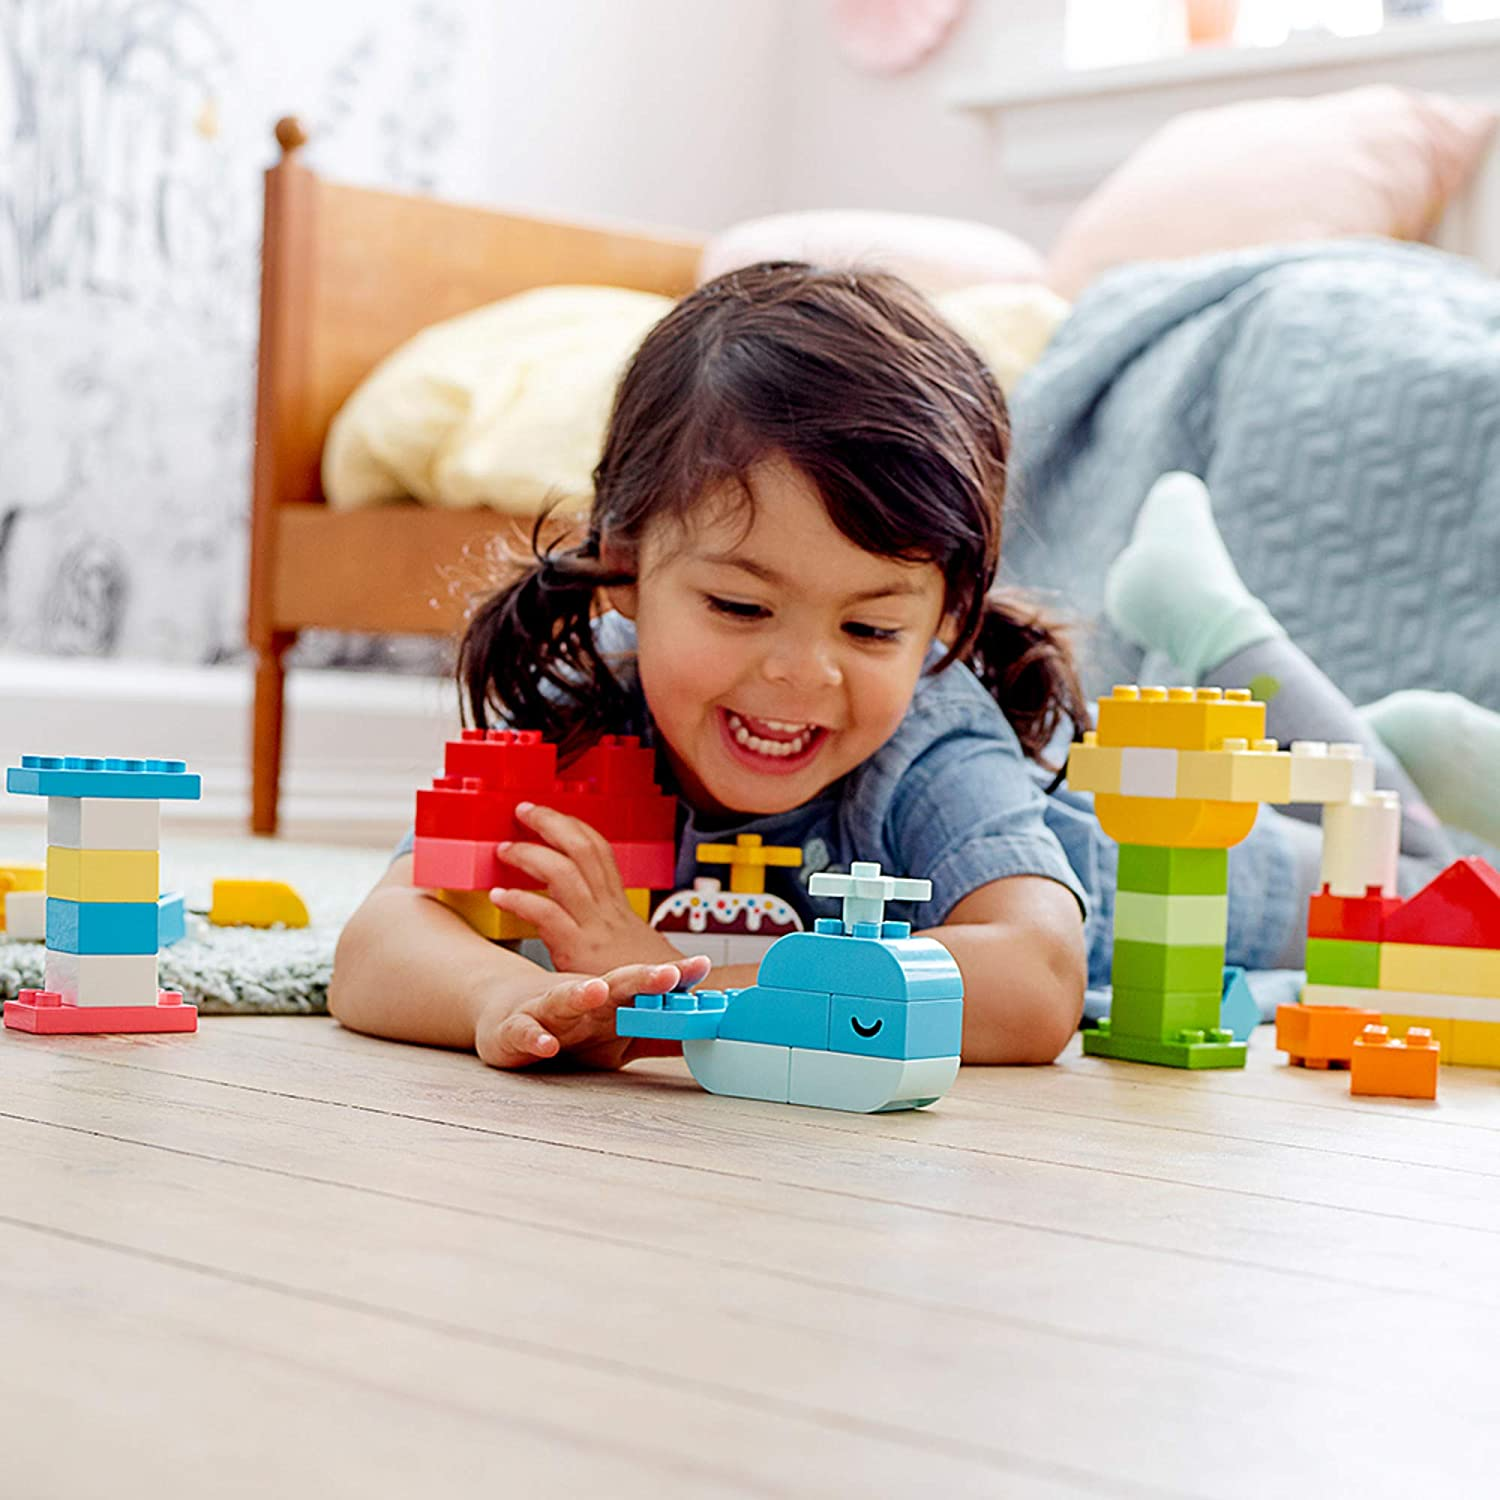 LEGO DUPLO Classic Heart Box 10909 First Building Playset and Learning Toy for Toddlers, Great Preschooler's Developmental Toy, New 2020 (80 Pieces)